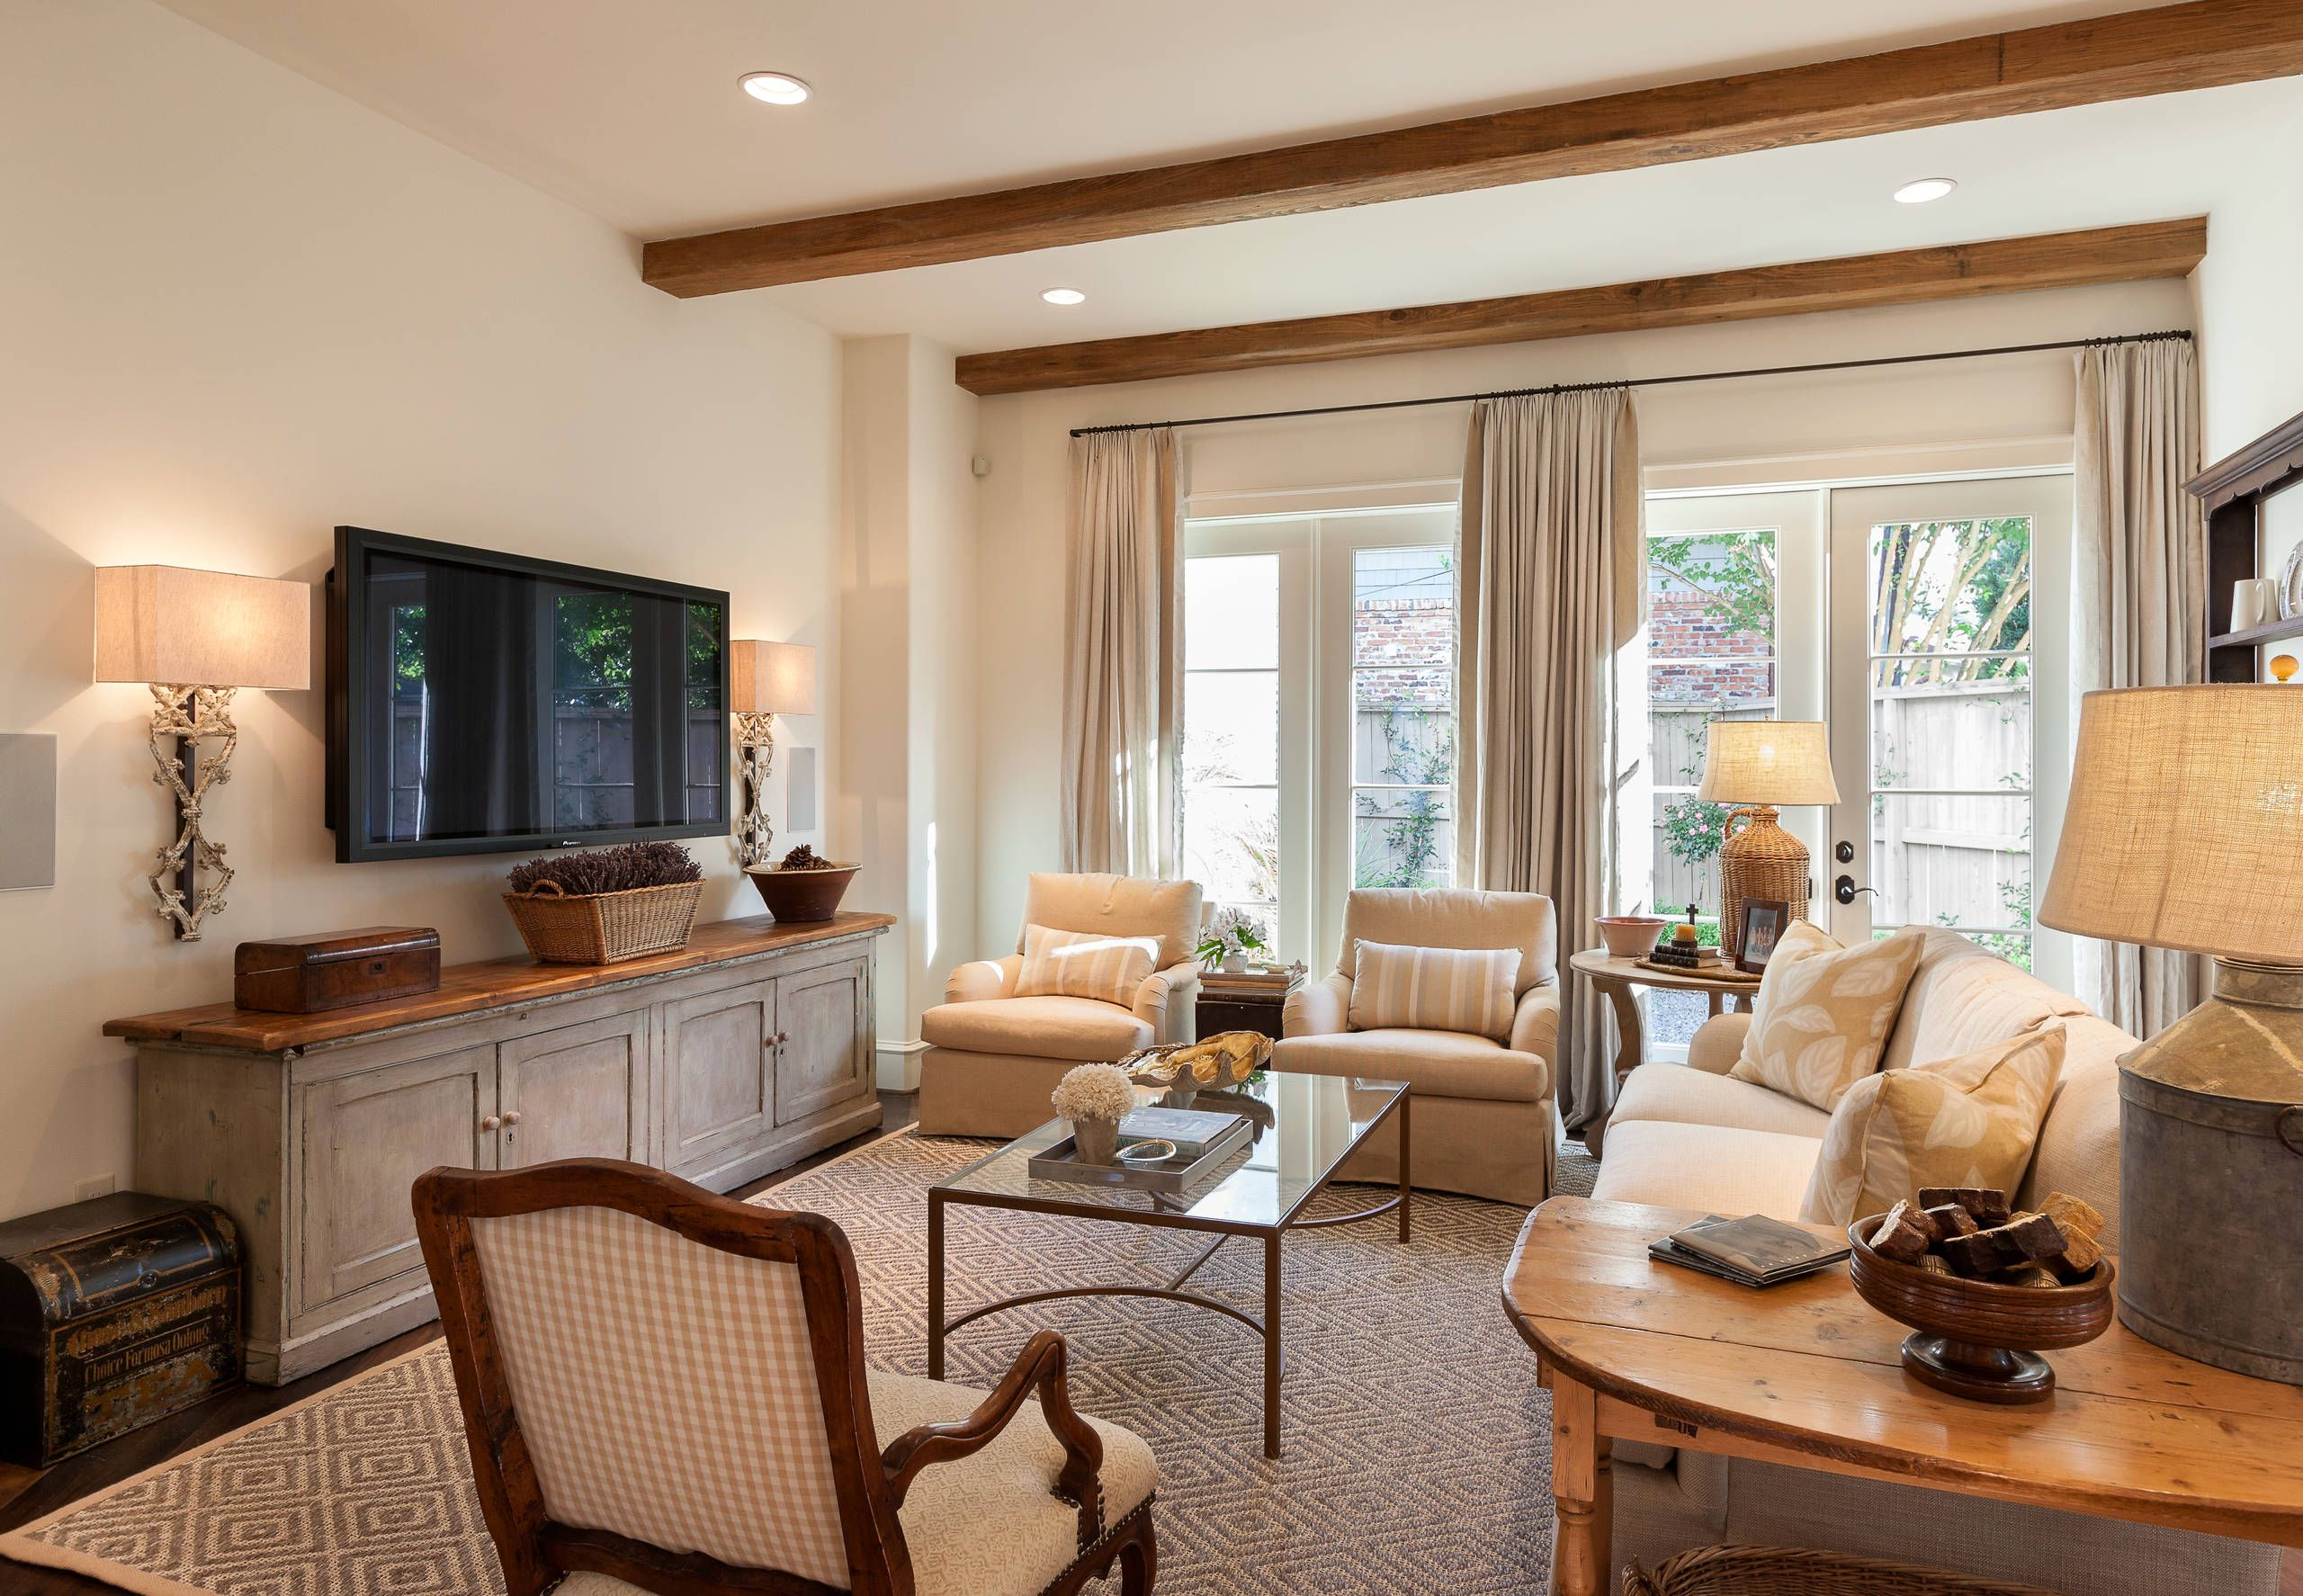 26 Gorgeously Beautiful Family Room Designs